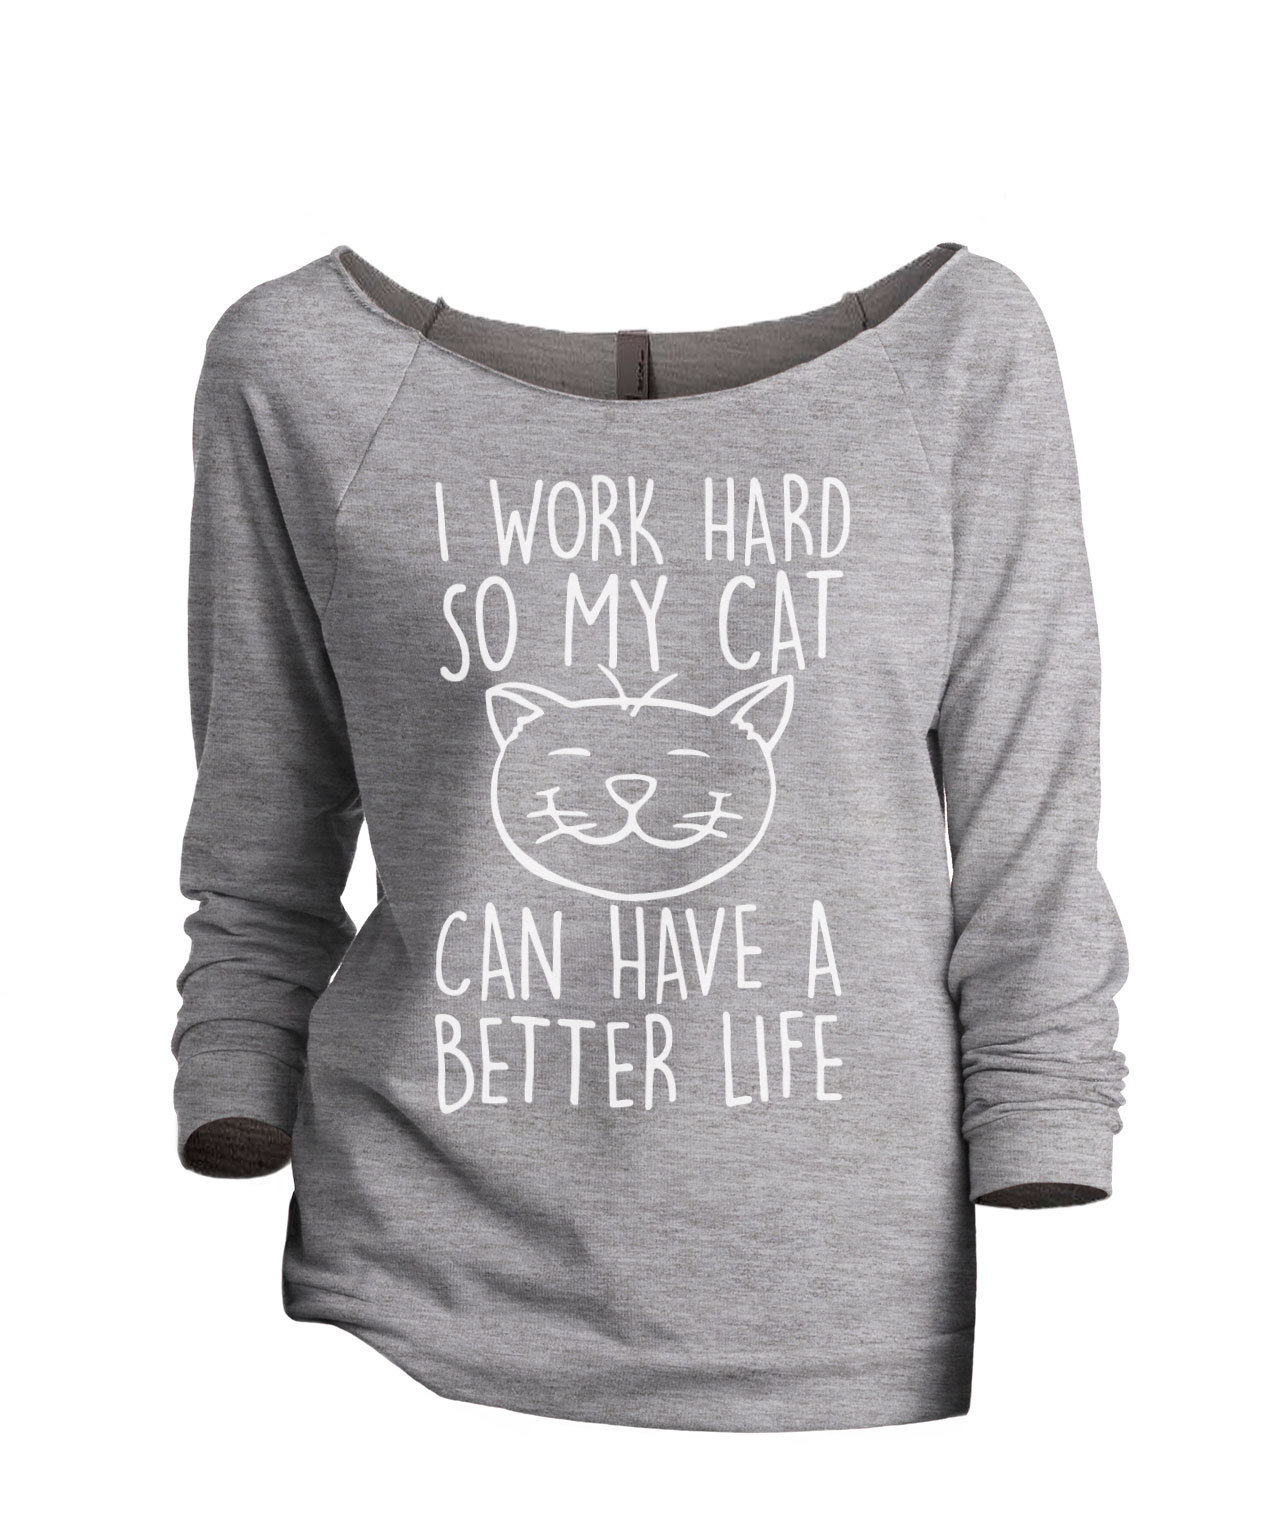 Primary image for Thread Tank I Work Hard So My Cat Can Have A Better Life Women's Slouchy 3/4 Sle